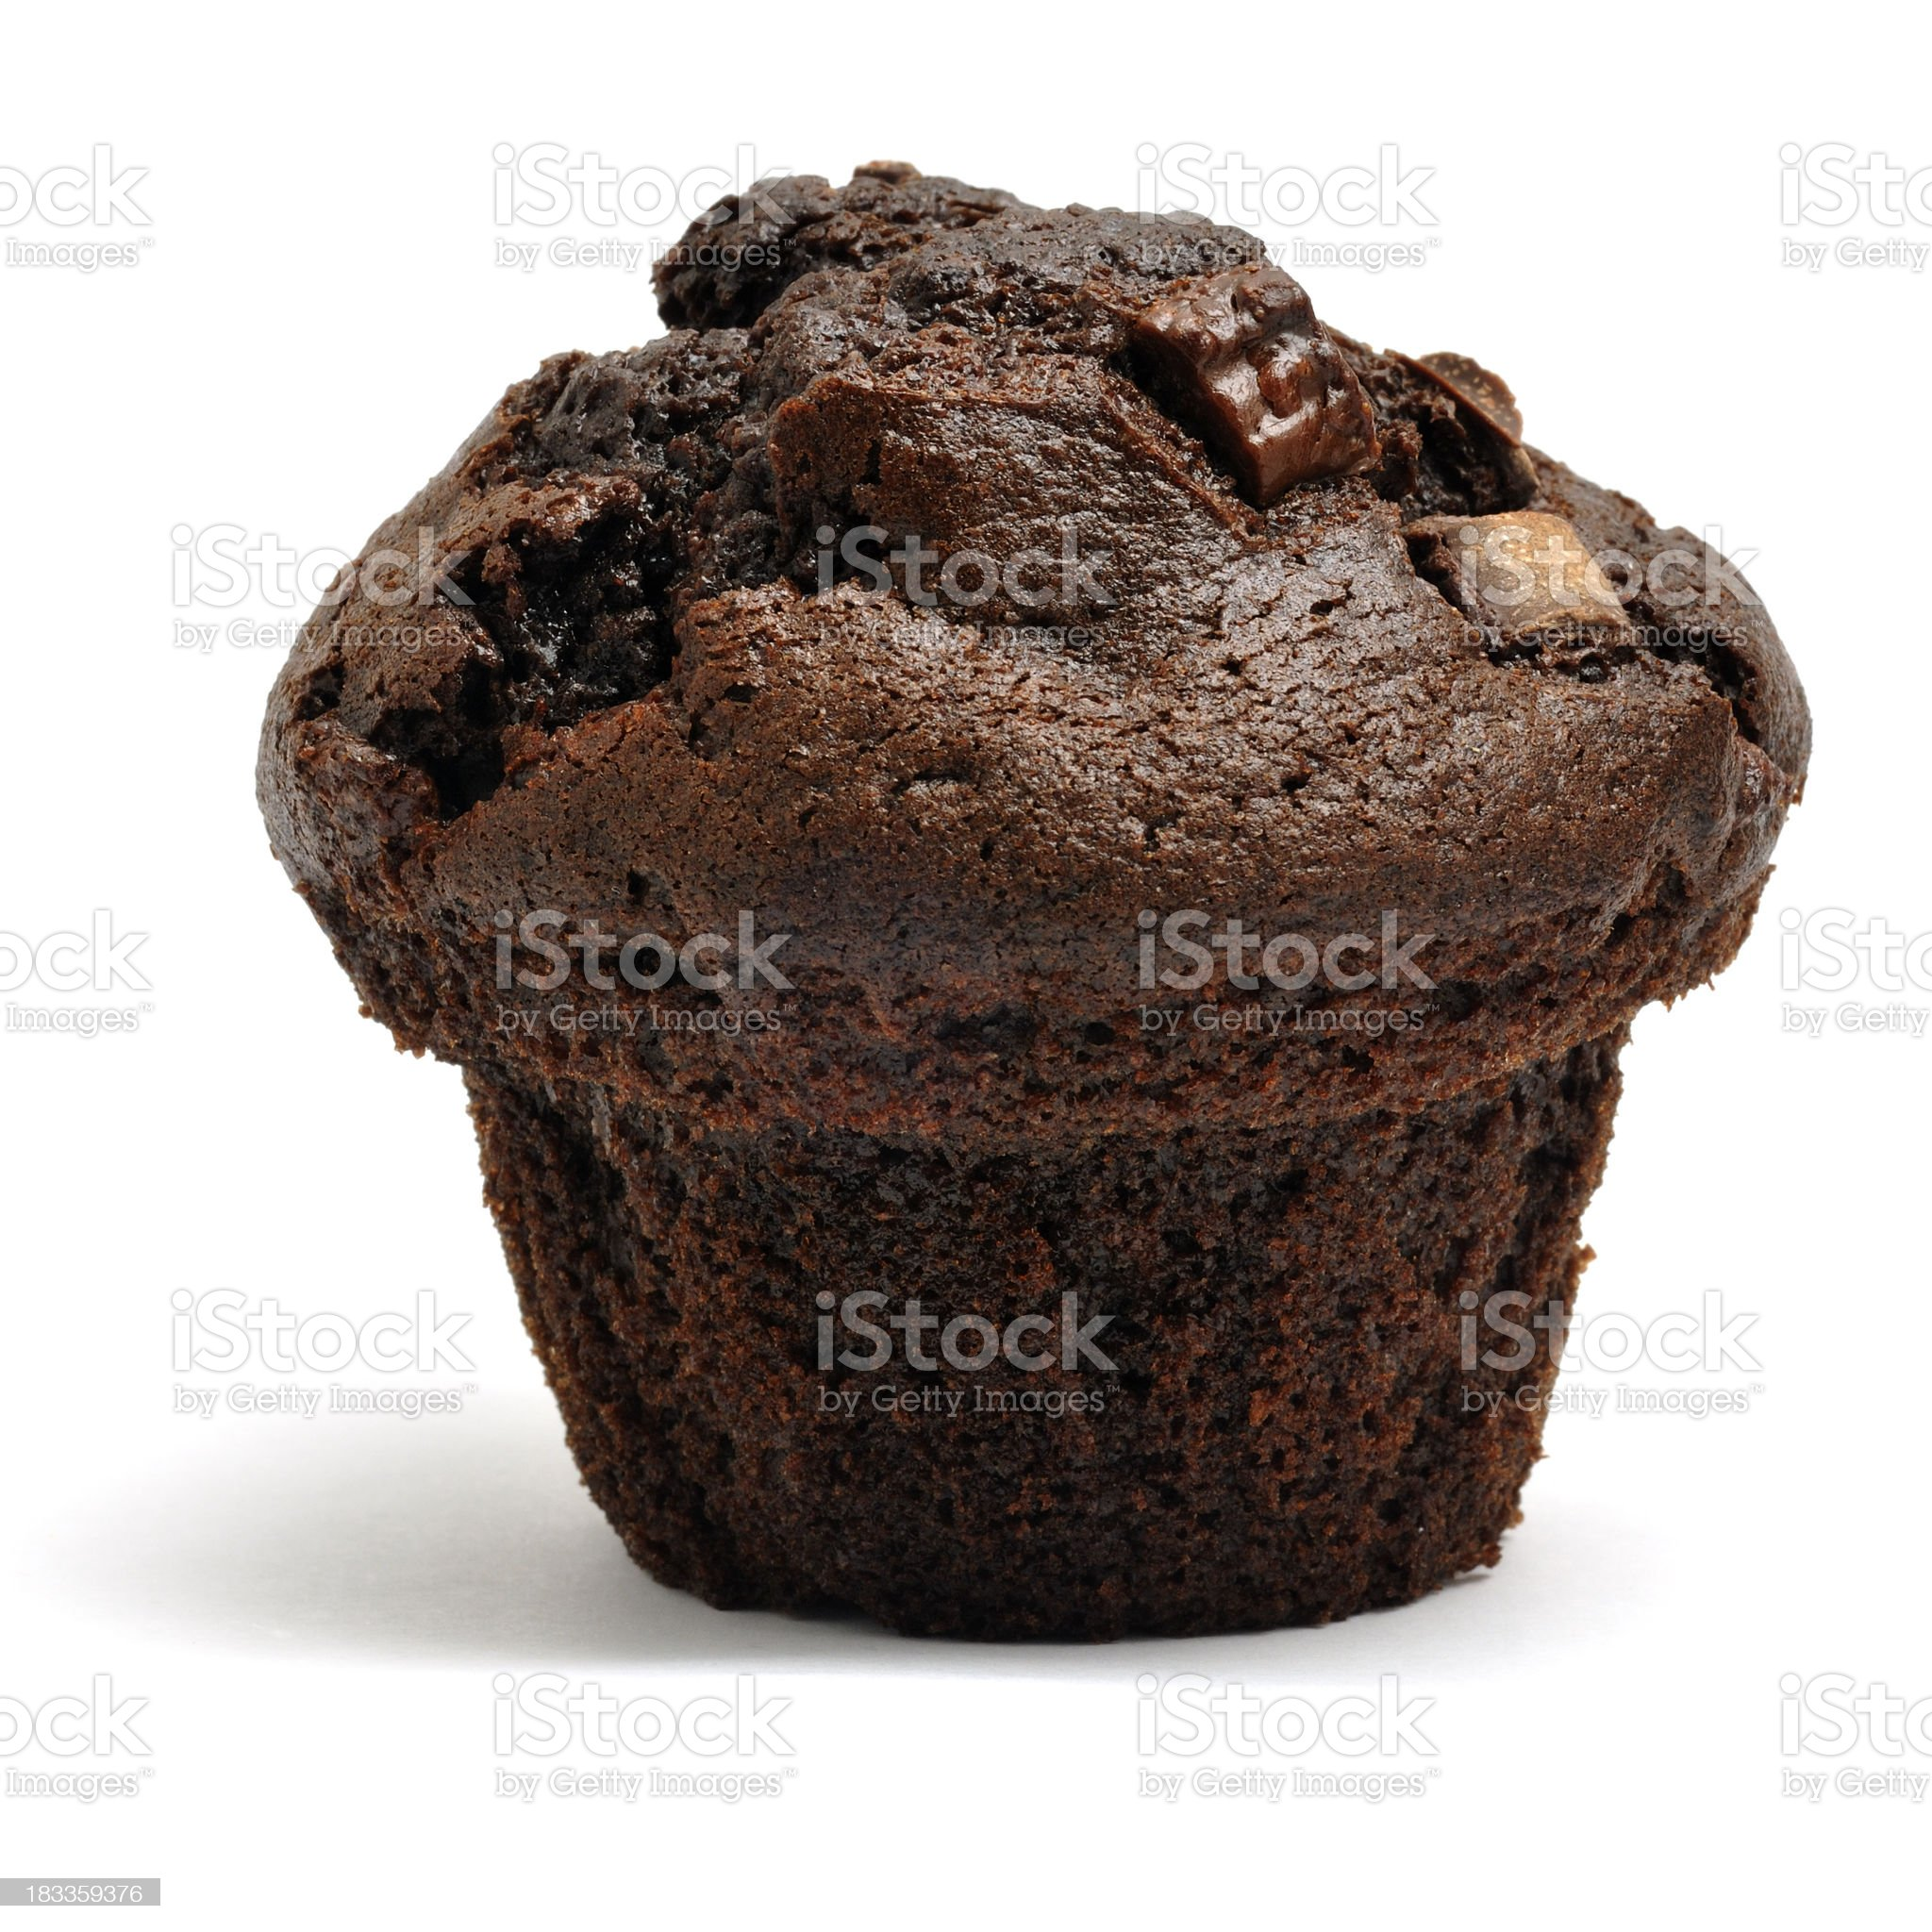 Double Chocolate Chip Muffin royalty-free stock photo